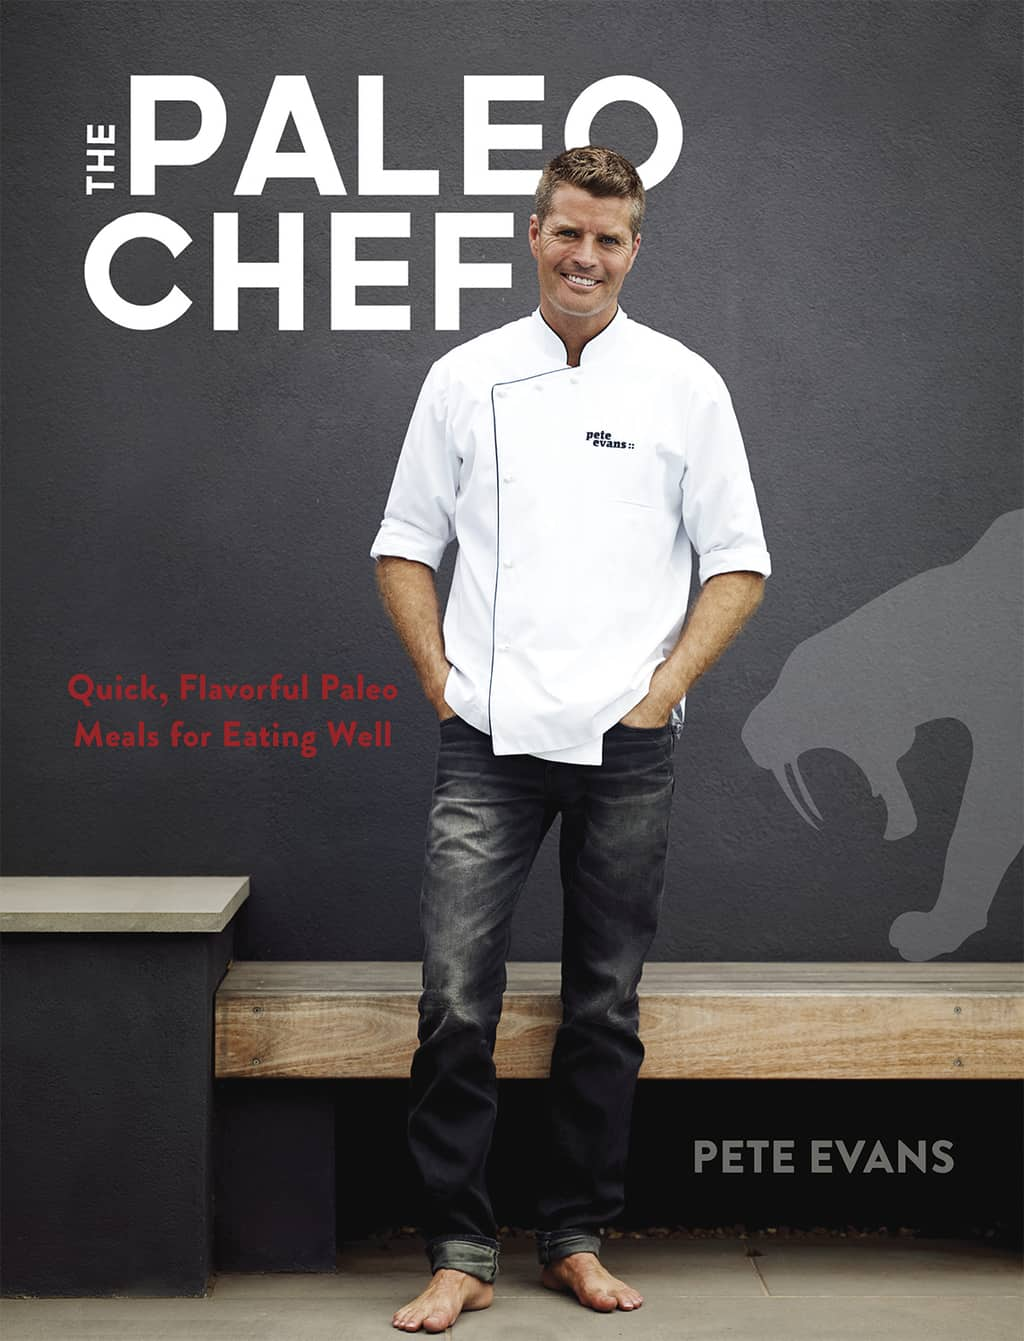 Book Review: The Paleo Chef